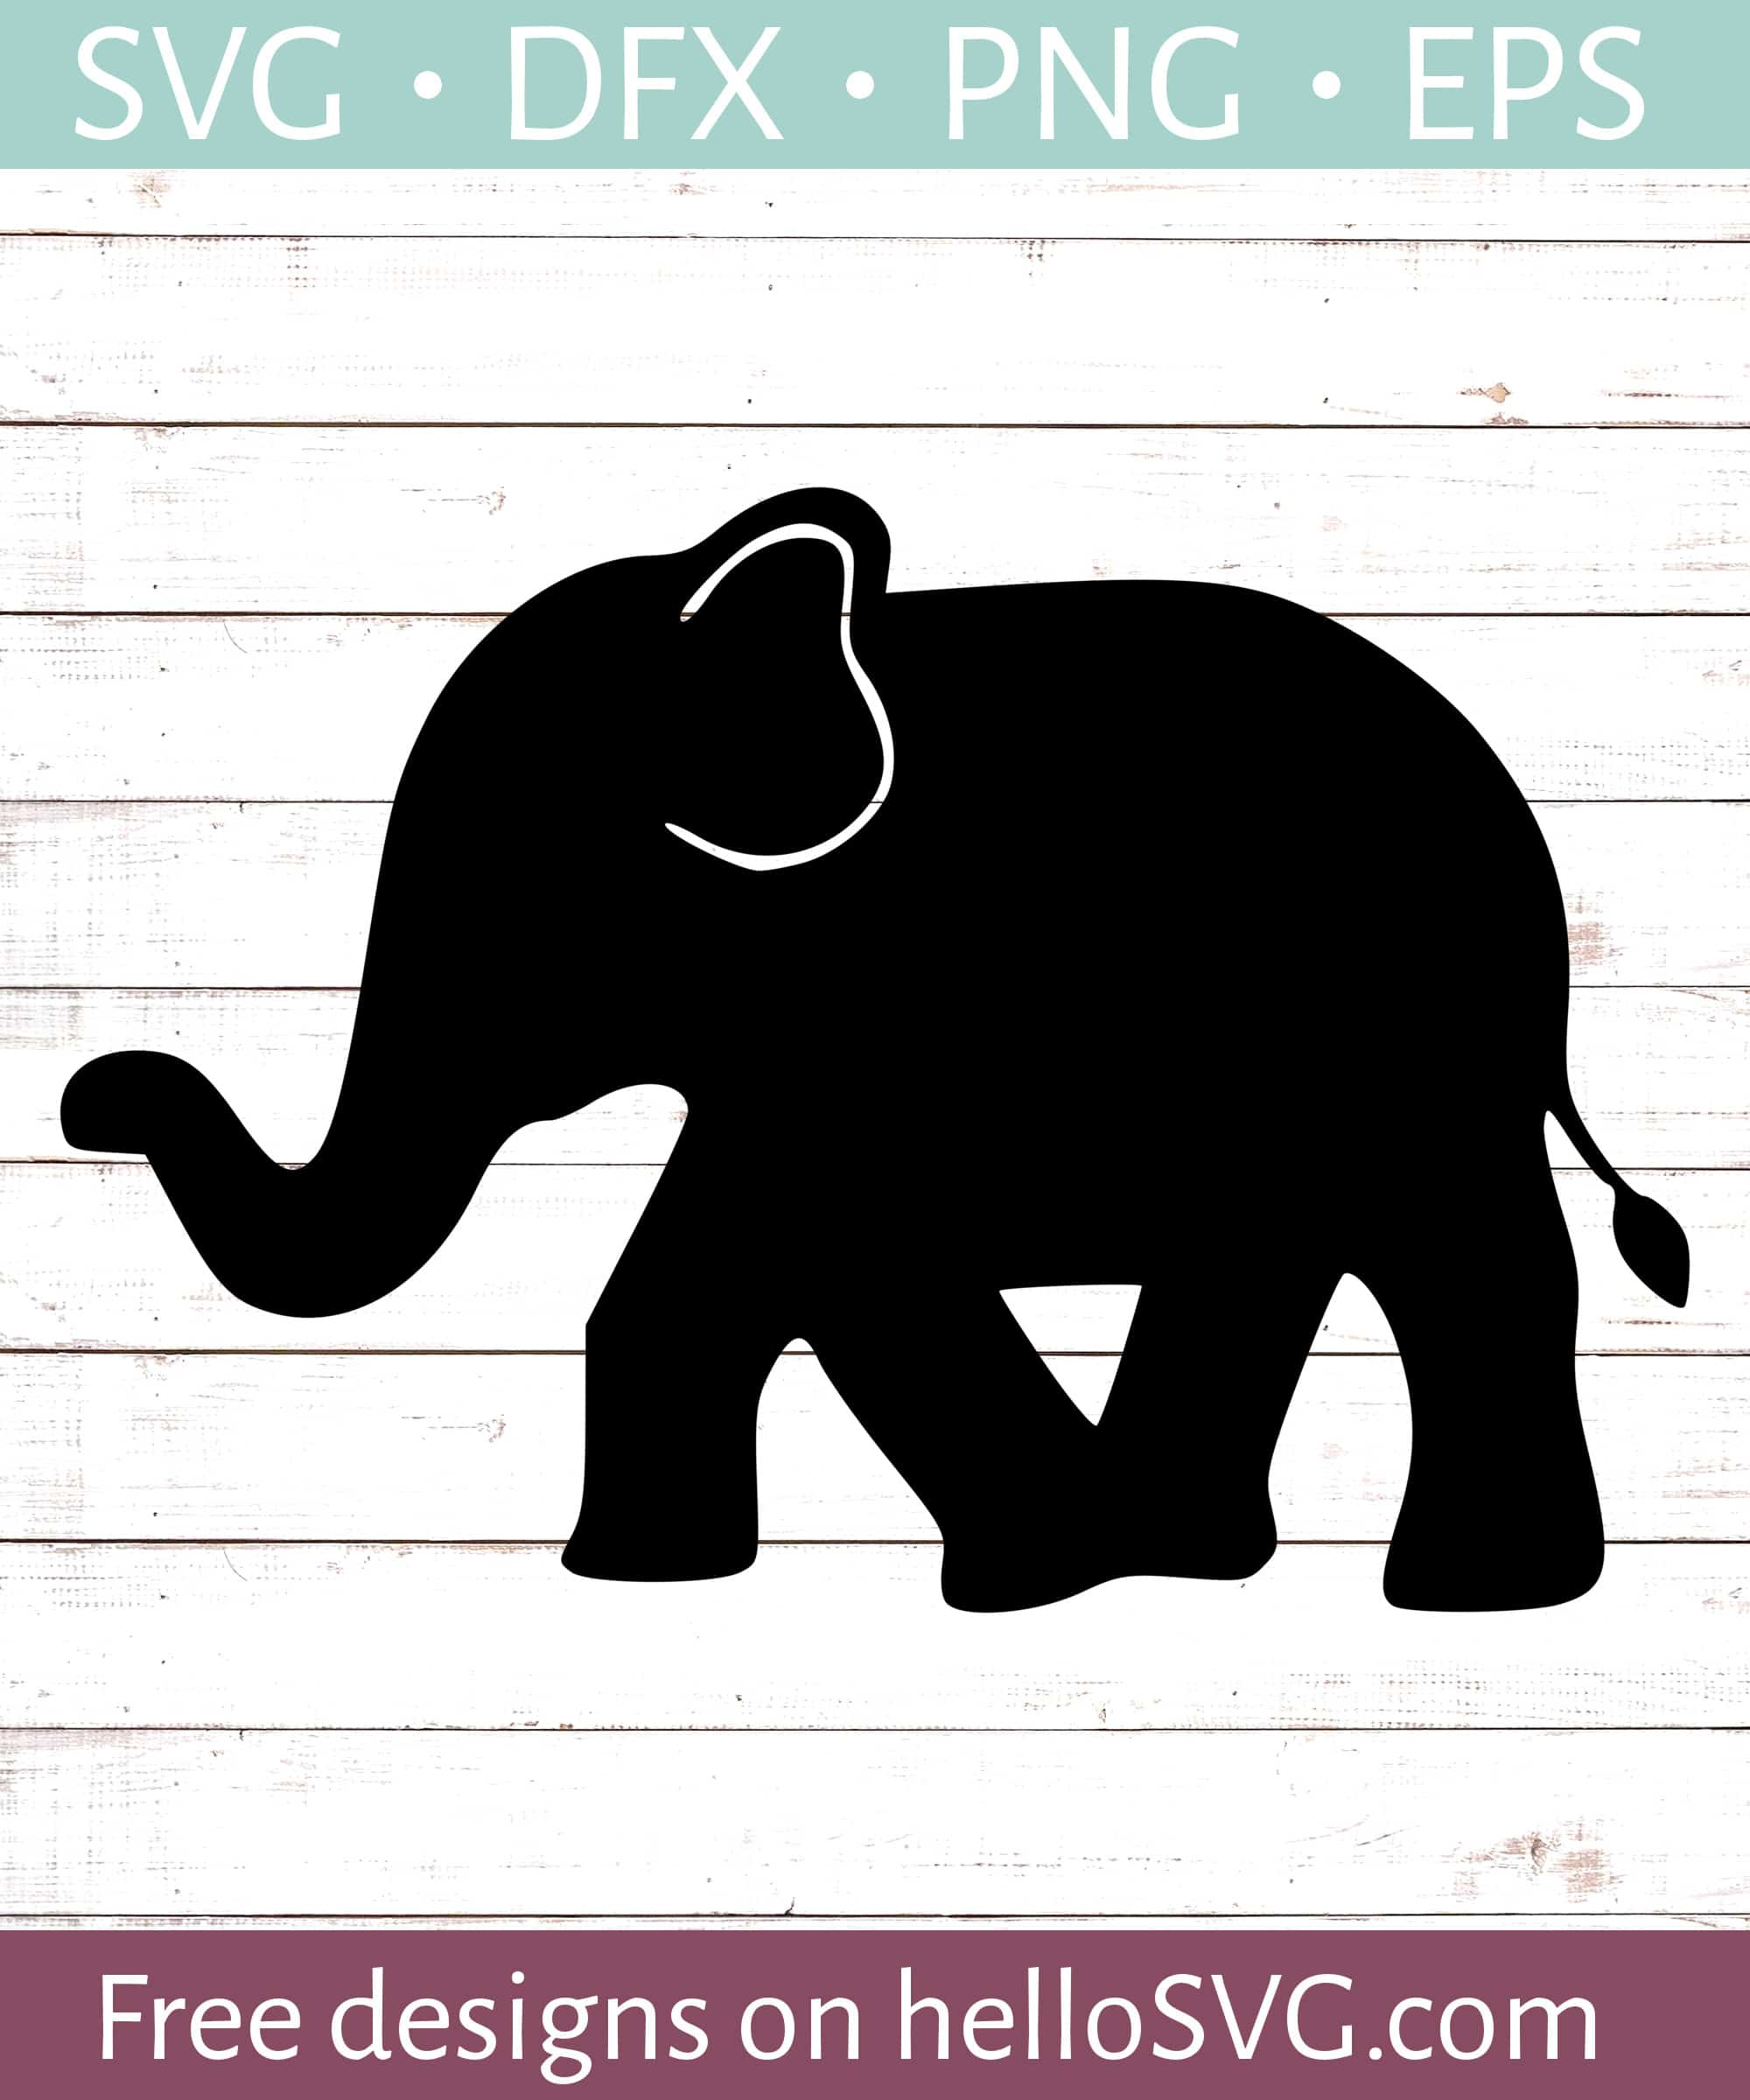 Download Walking Elephant SVG - Free SVG files | HelloSVG.com